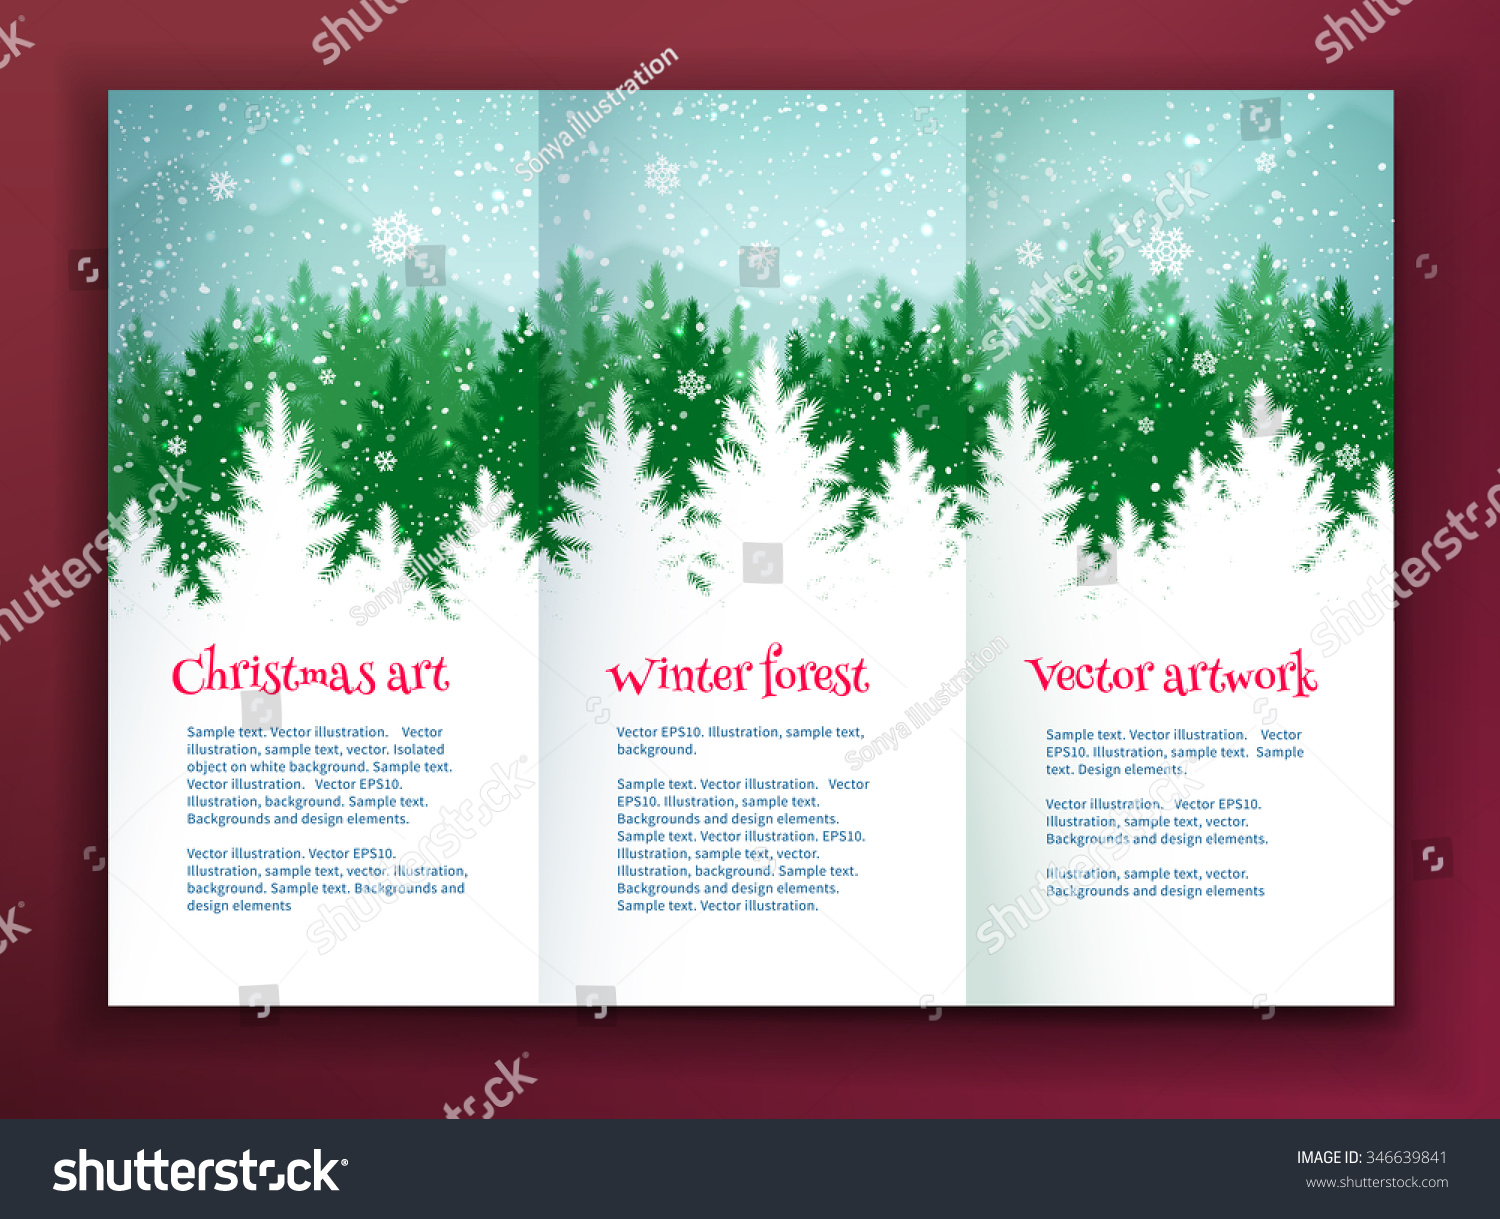 christmas leaflet design template winter spruce stock vector christmas leaflet design template winter spruce green forest silhouette landscape and falling snow